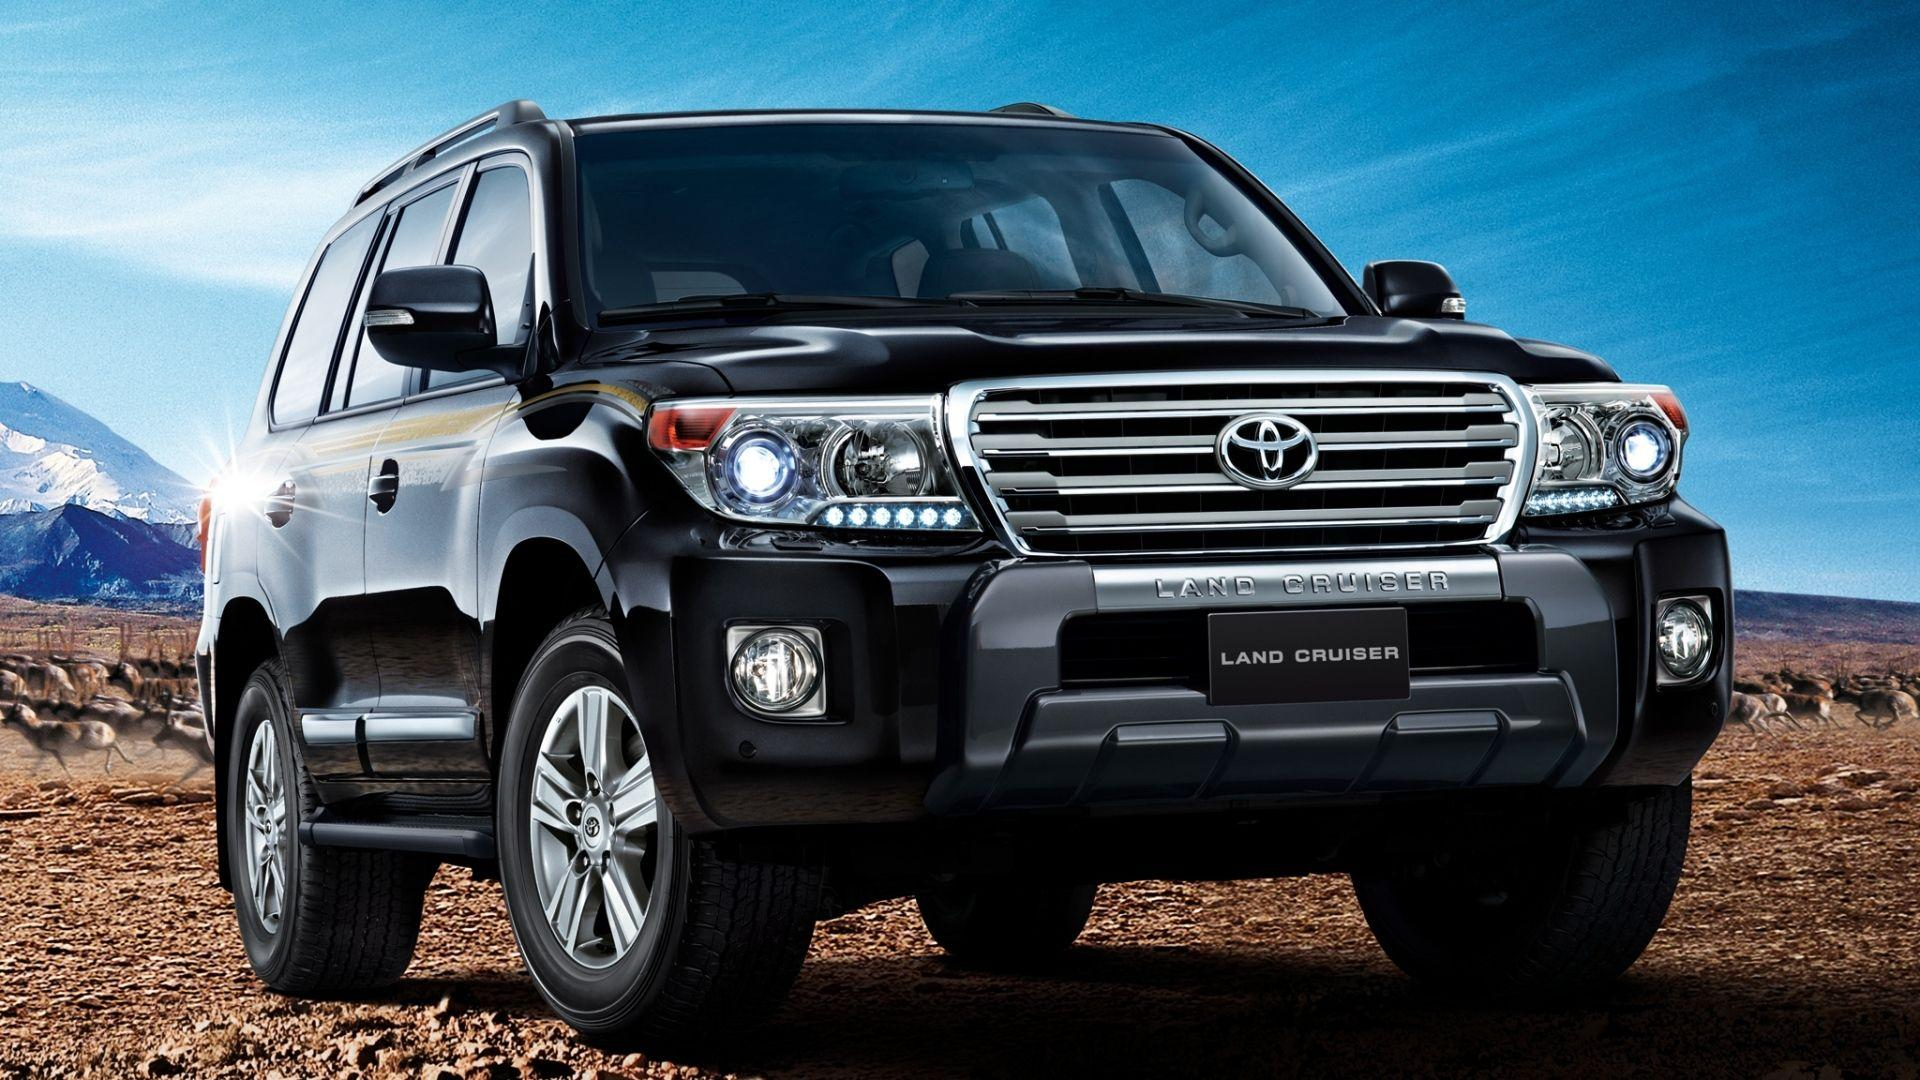 Land Cruiser v8 - Top Selling SUVs